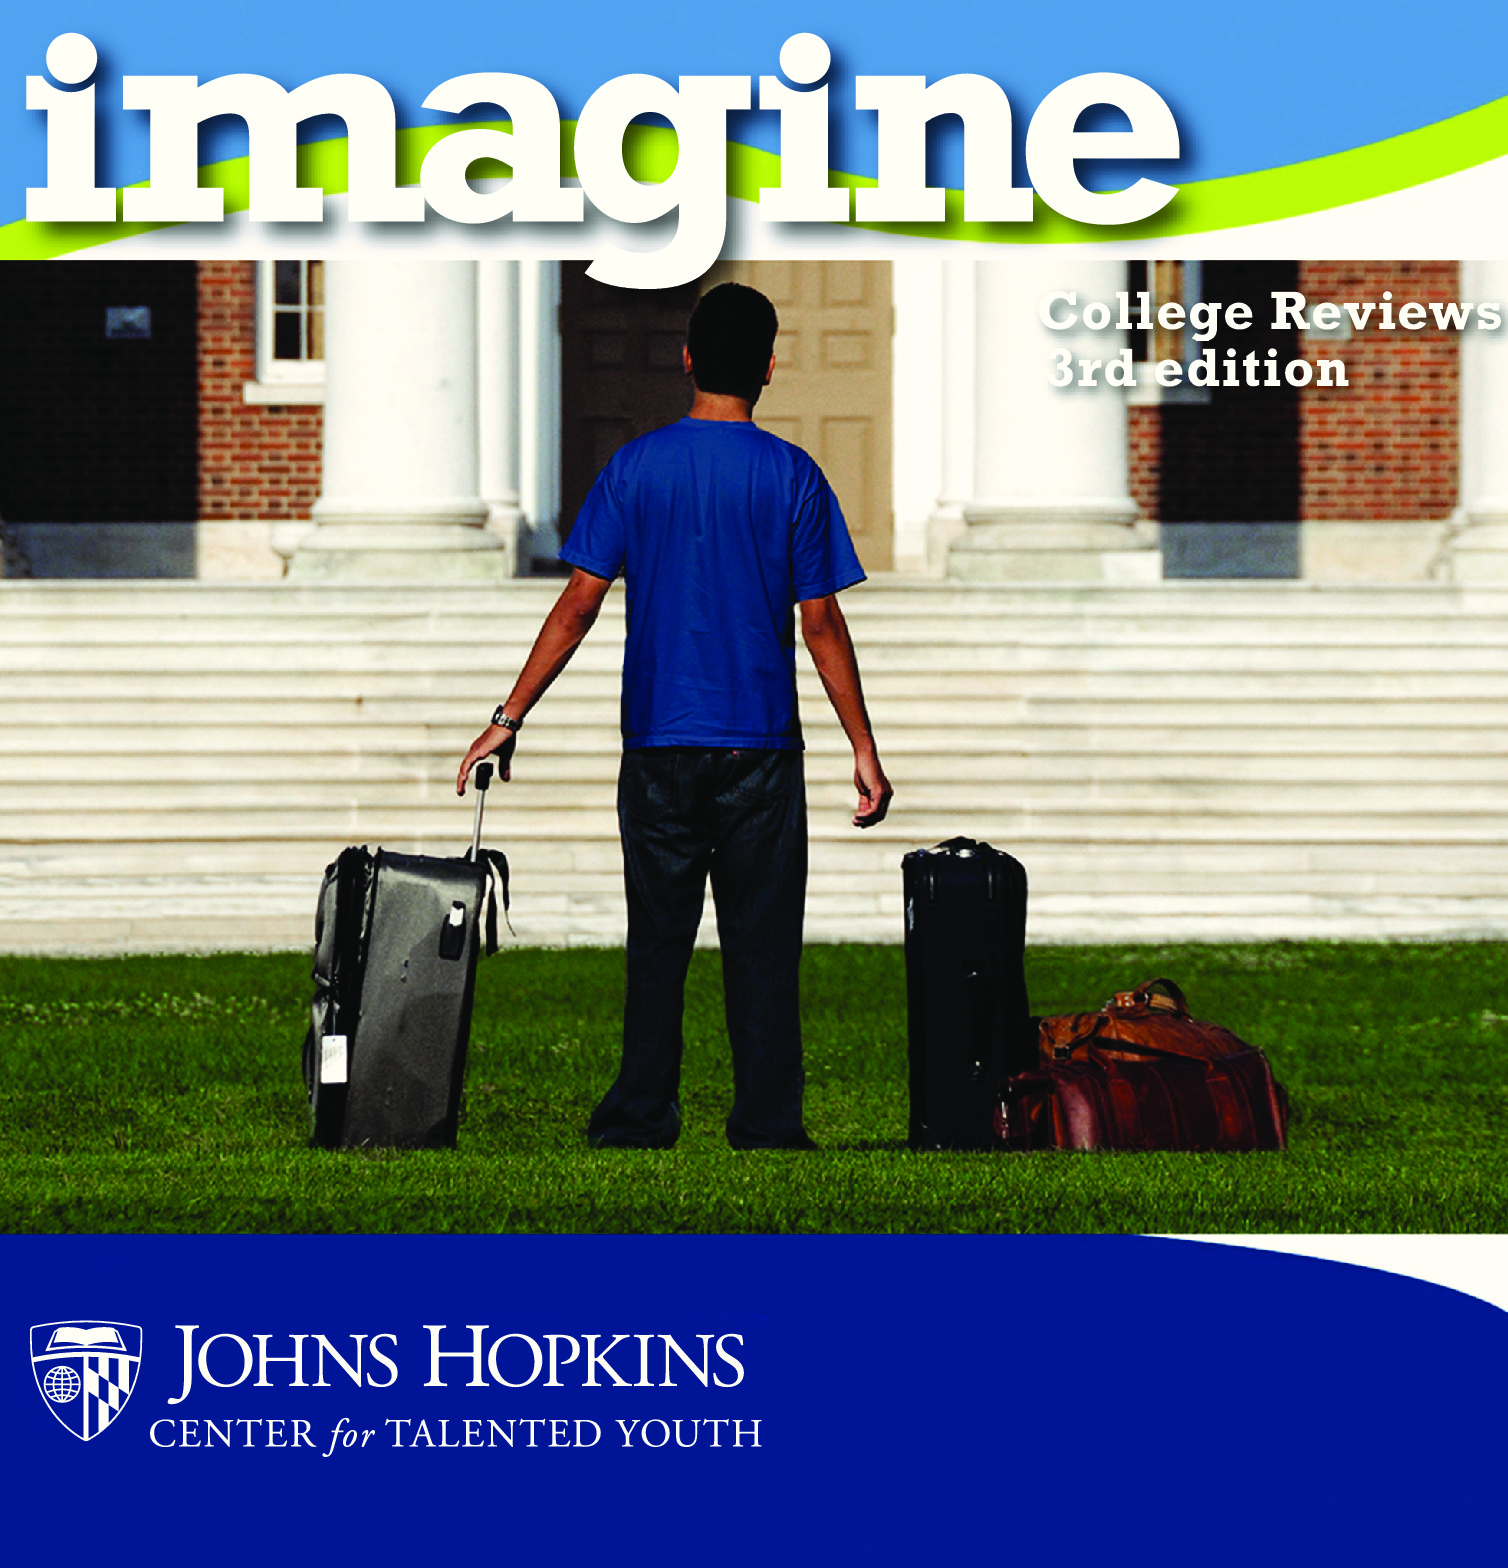 College_Reviews_CD_cover